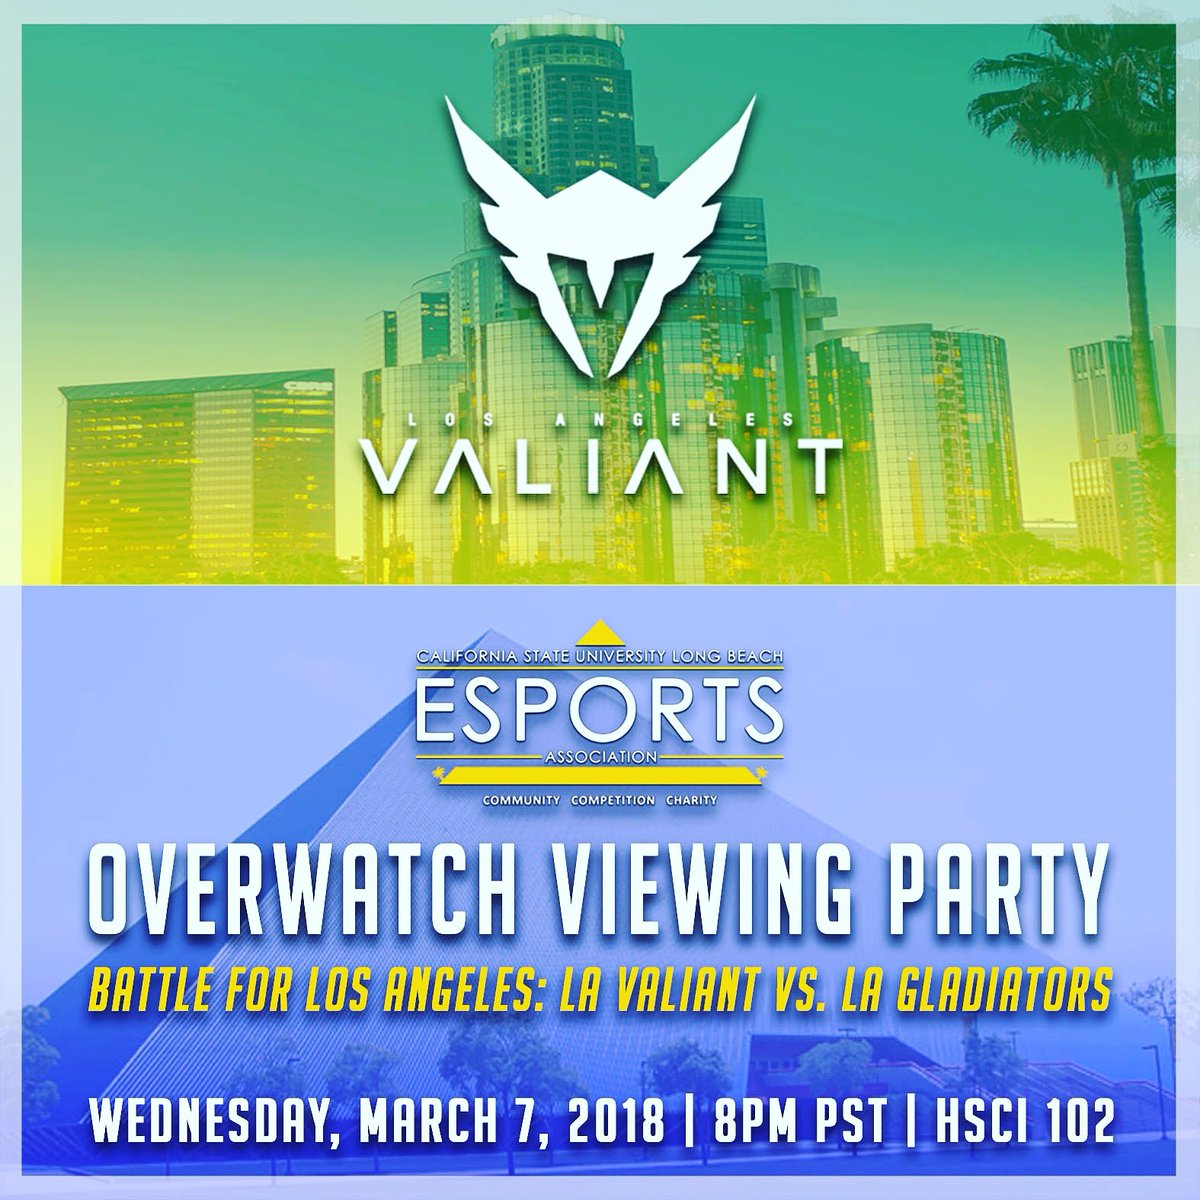 We will be hosting a viewing party on our campus for the 3rd week of The Overwatch League! Kick back and hang out with us at HSCI 102 for raffles, great company, and exclusive Valiant swag! -  #csulbesports #esports #lavaliant #overwatch #OverwatchLeague  #WingsOut #VALLA https://t.co/9QkrZUHgLH.